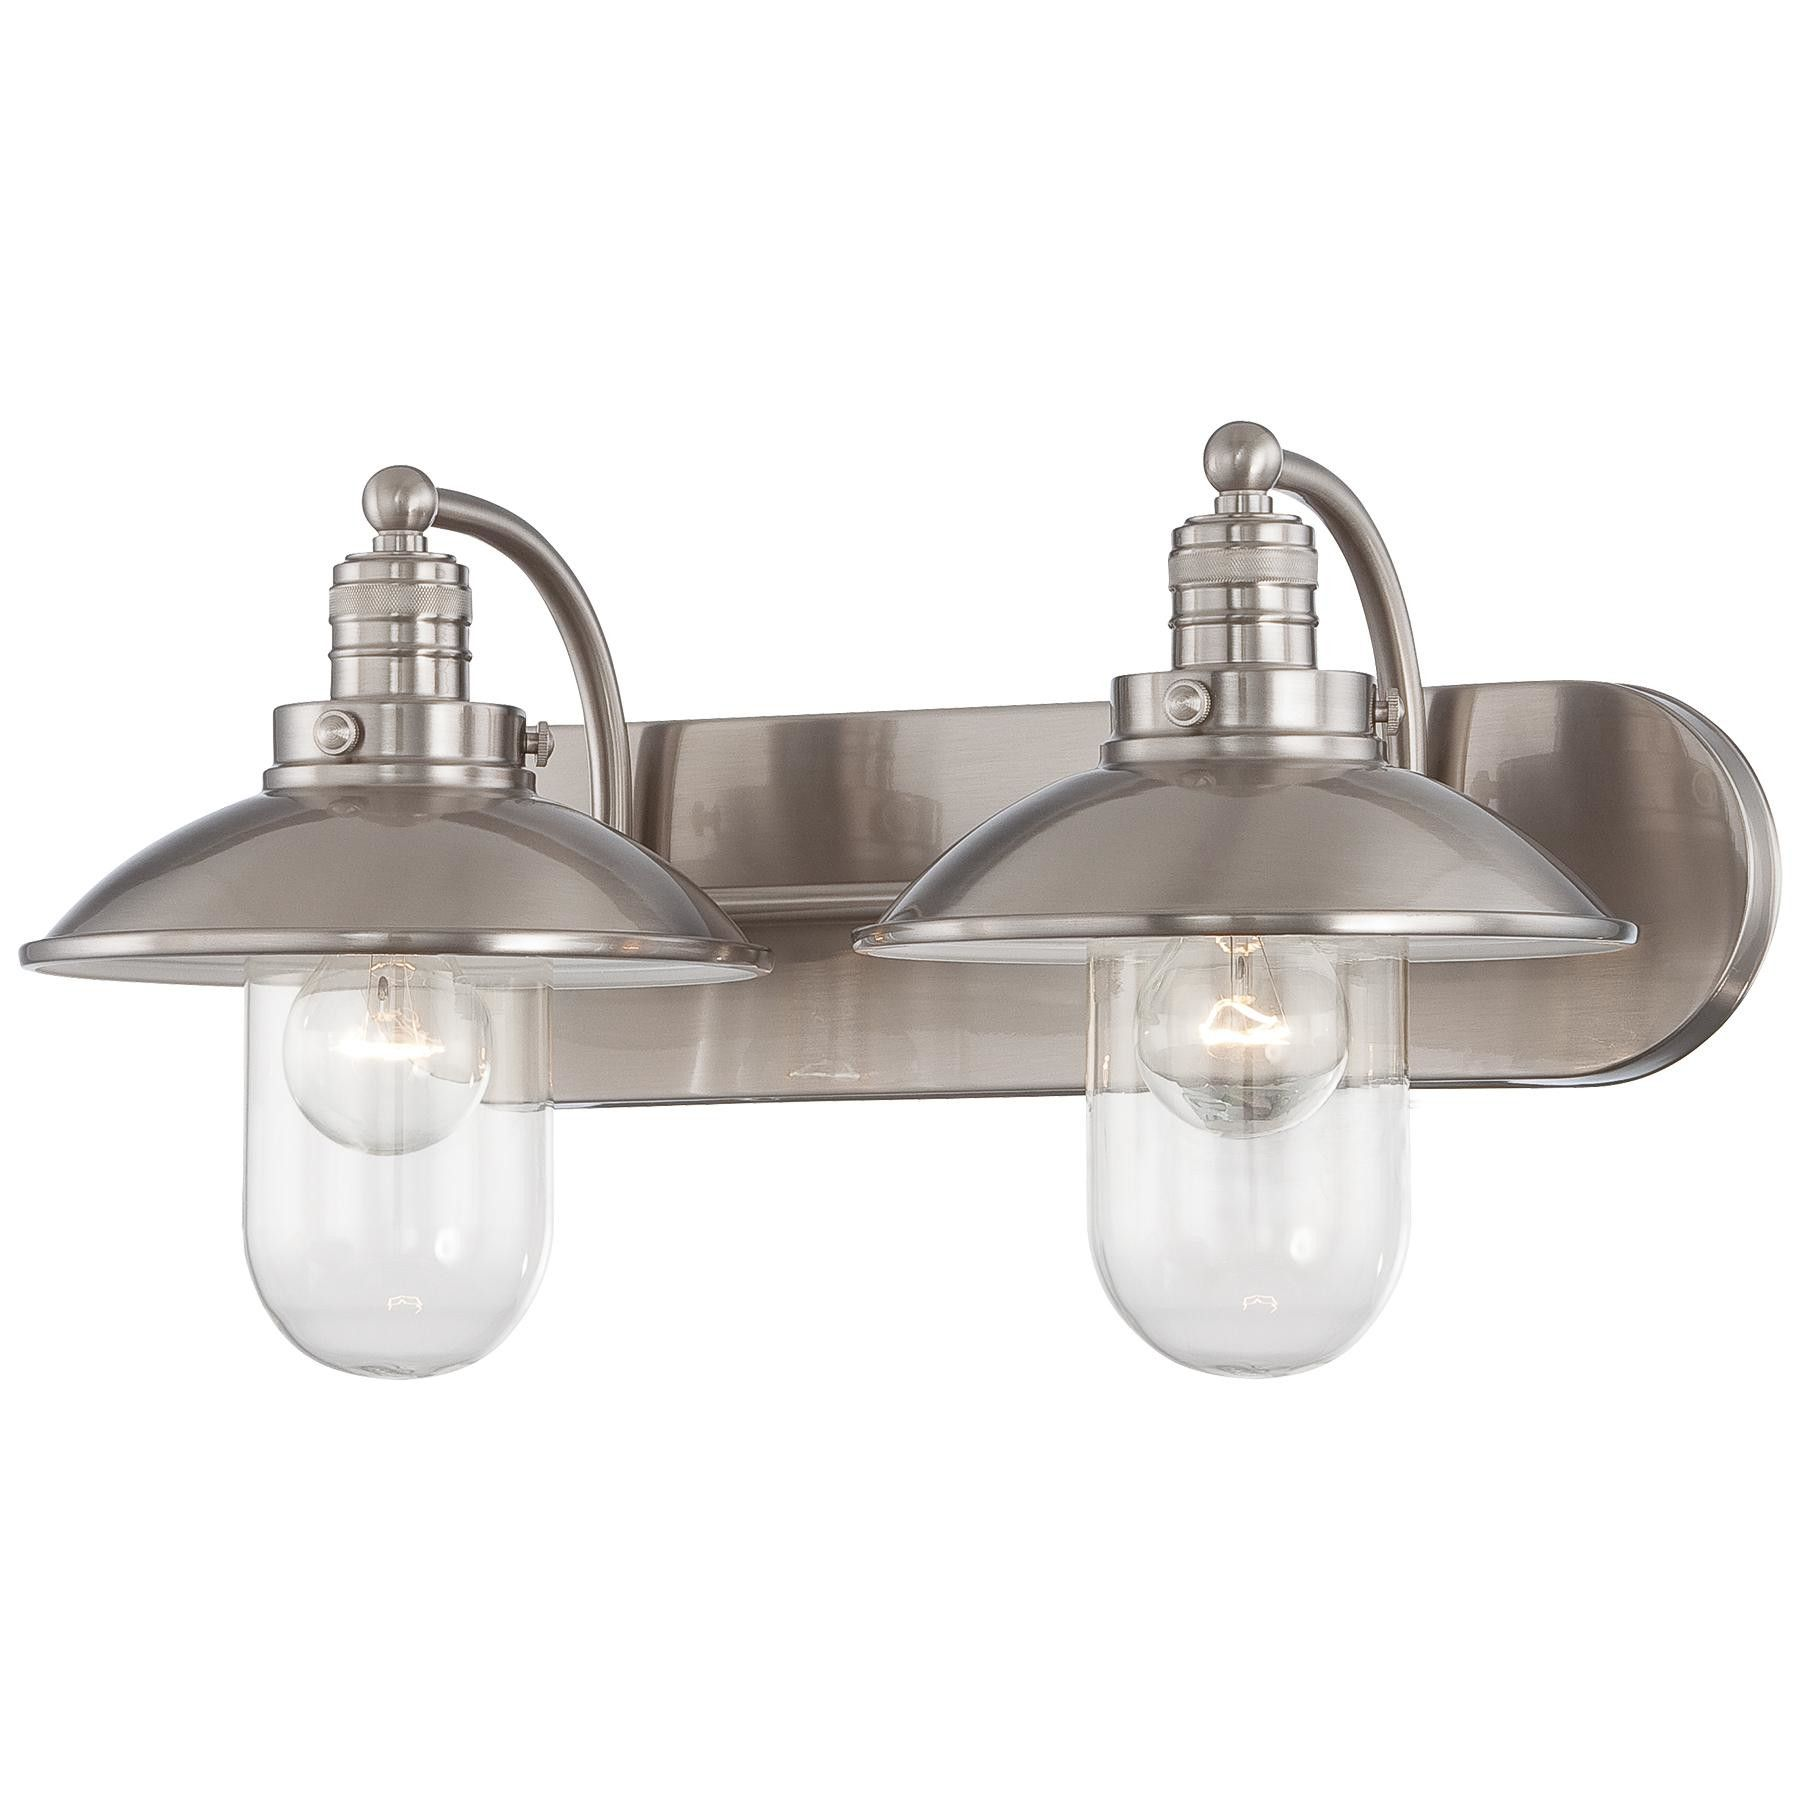 Breakwater Bay Roselawn 2Light Vanity Light (With images